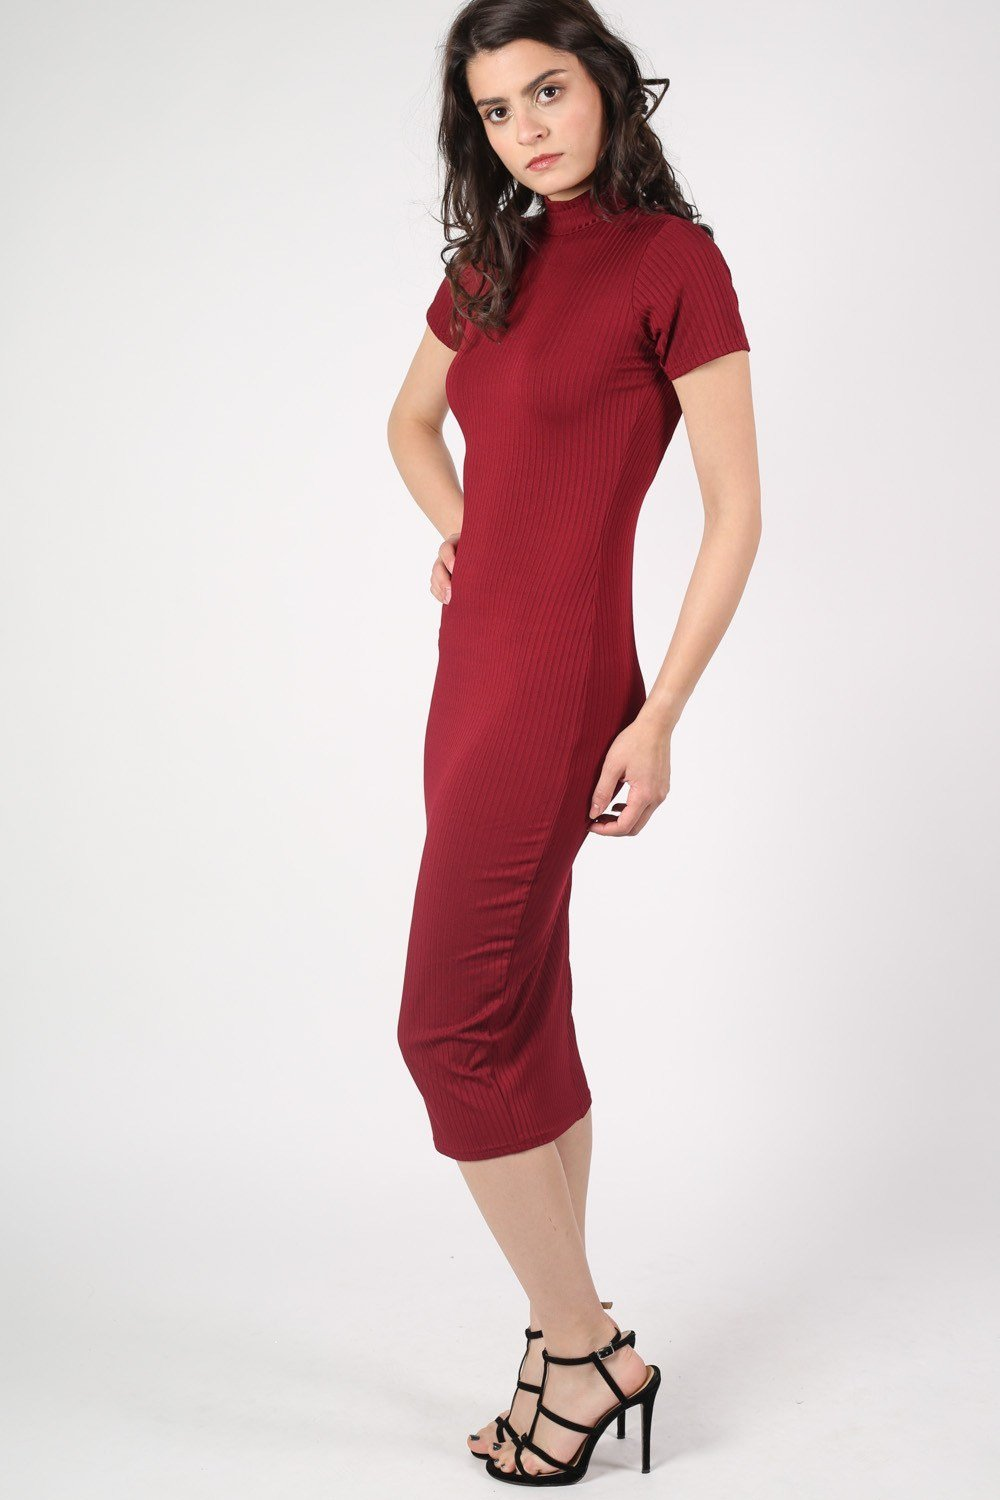 Cap Sleeve High Neck Ribbed Midi Dress in Wine Red 1